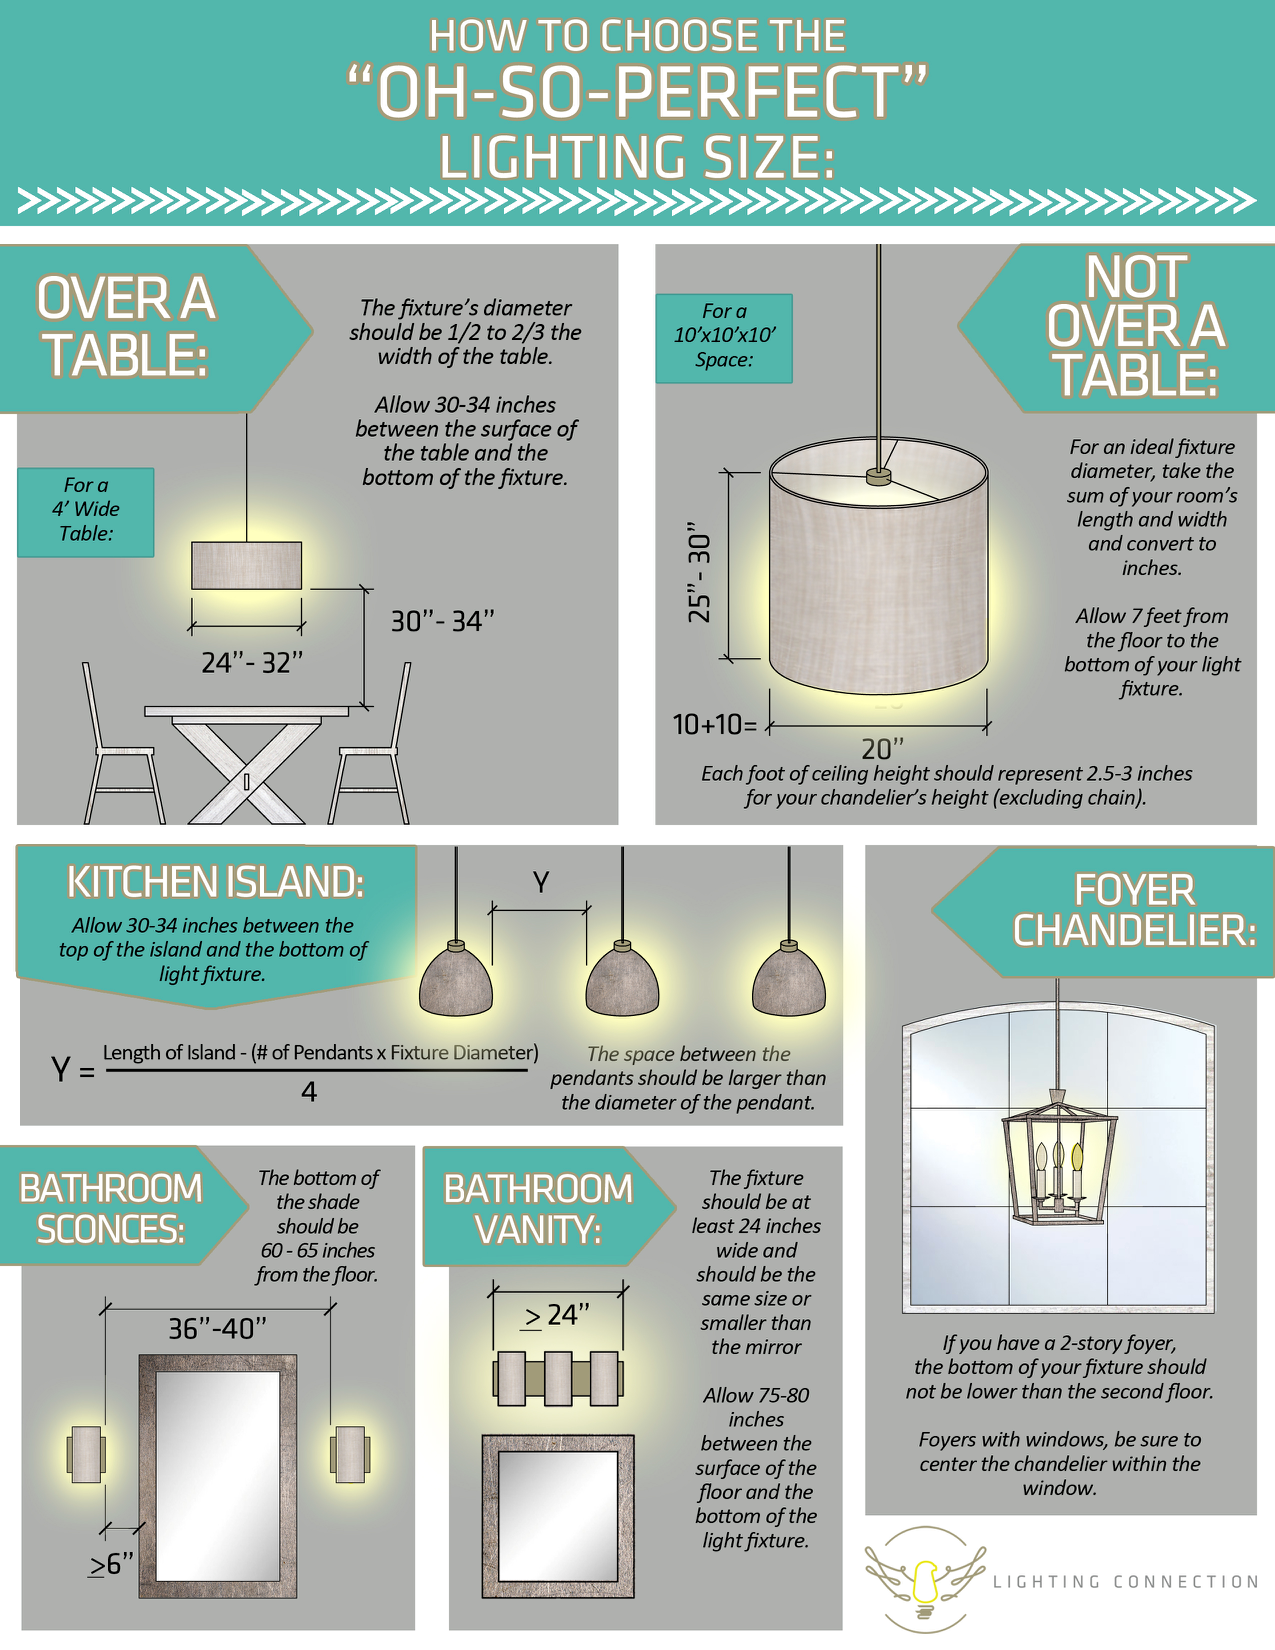 Lighting Size Guide Chandelier Sizing Help : Lighting Connection